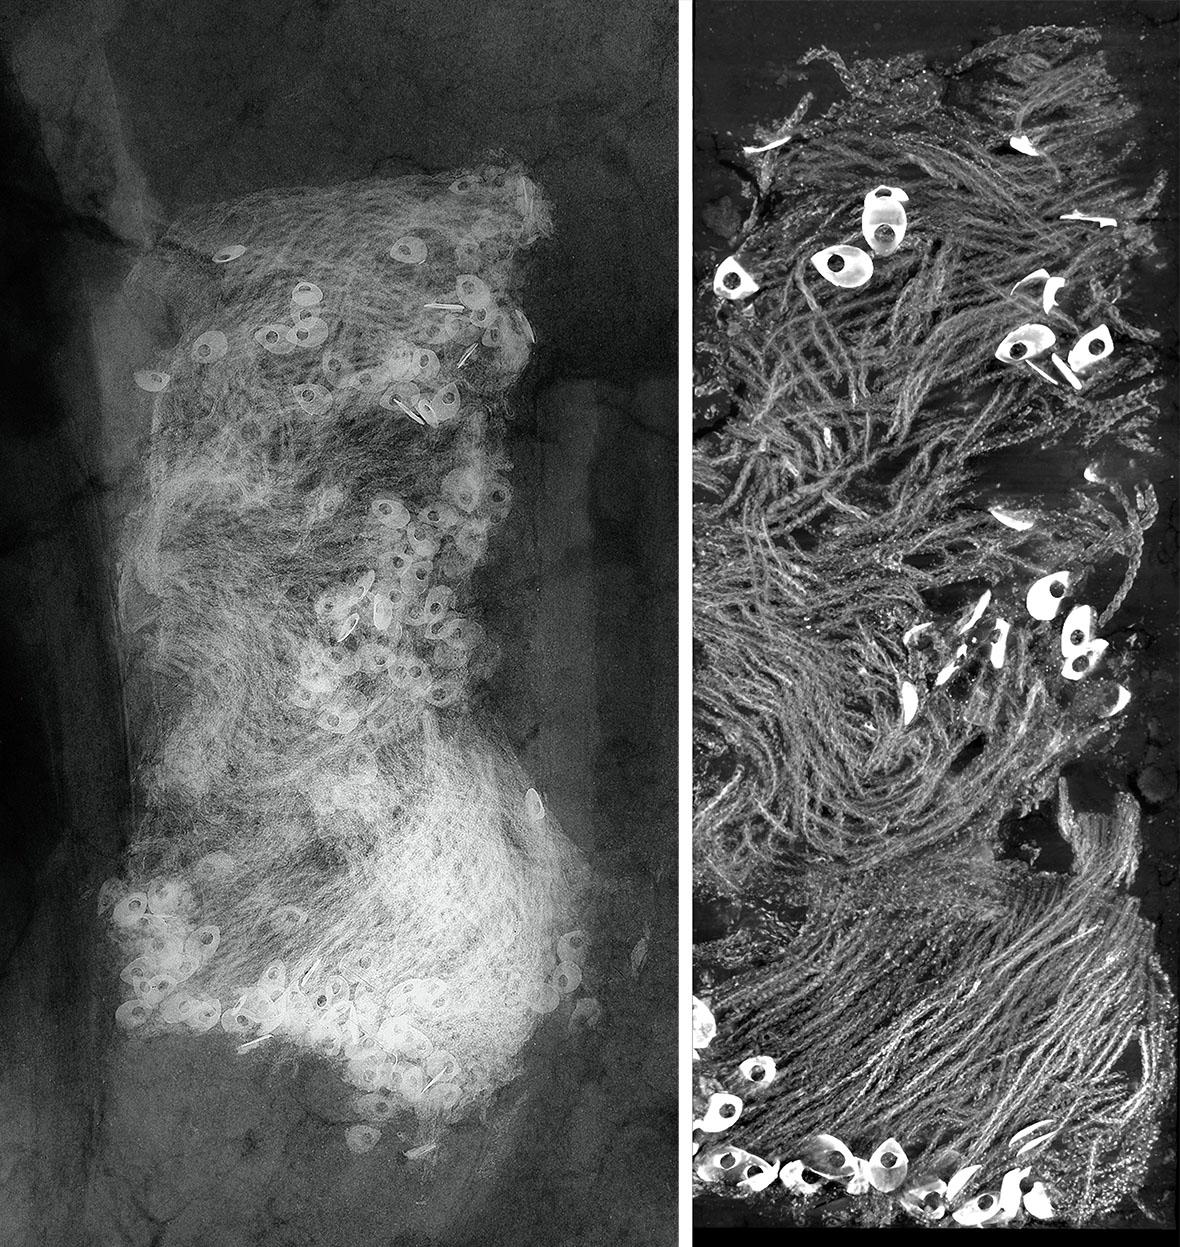 X-ray (left) and Micro CT imaging (right) of silver fringe found with William West.